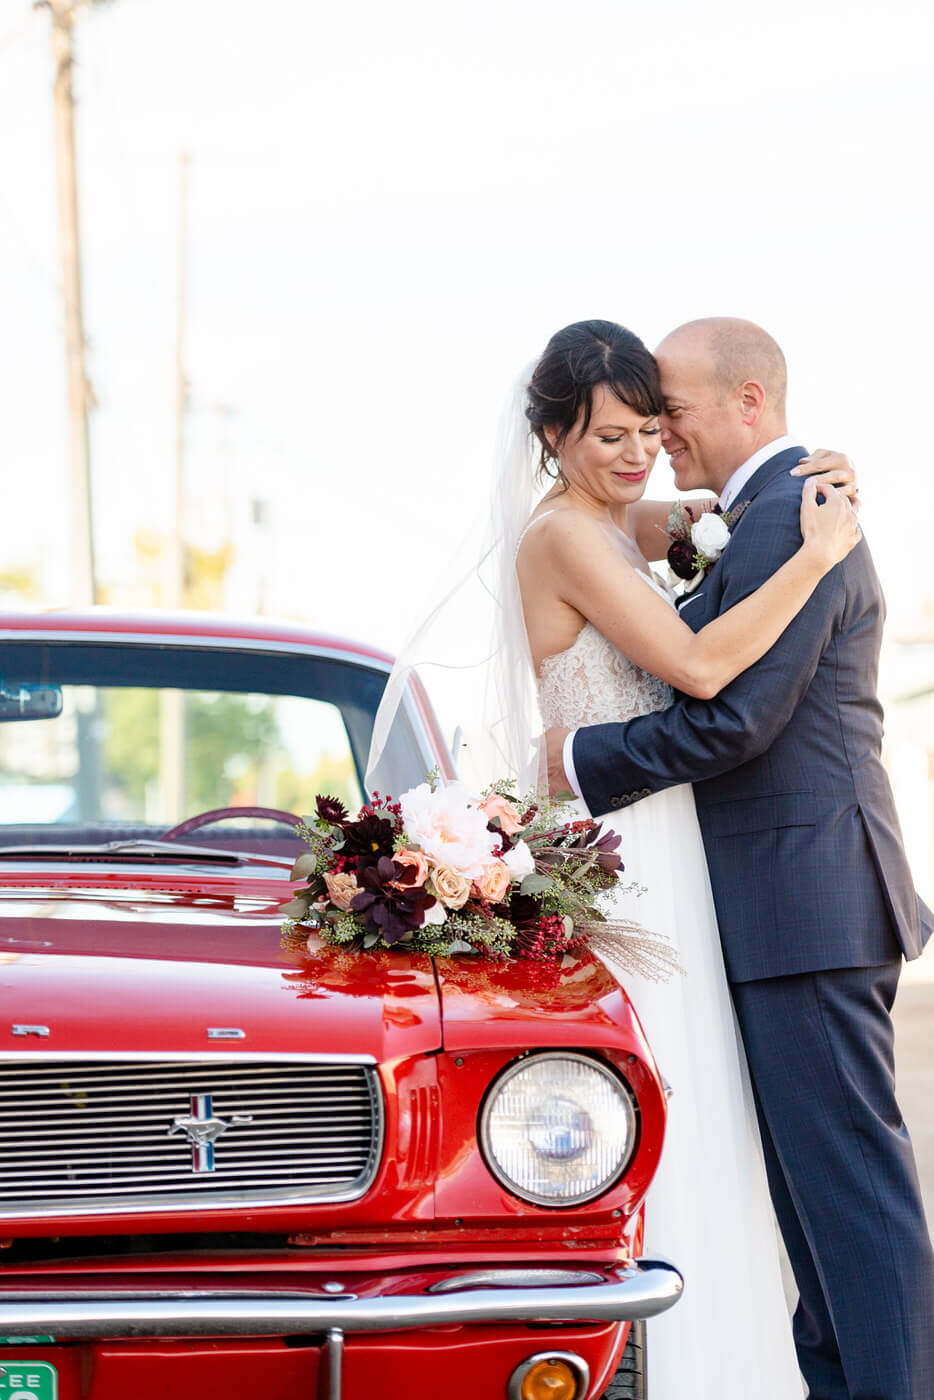 Scott & Keely - Bride & Groom leaning on vintage mustang at black and white wall in Regina